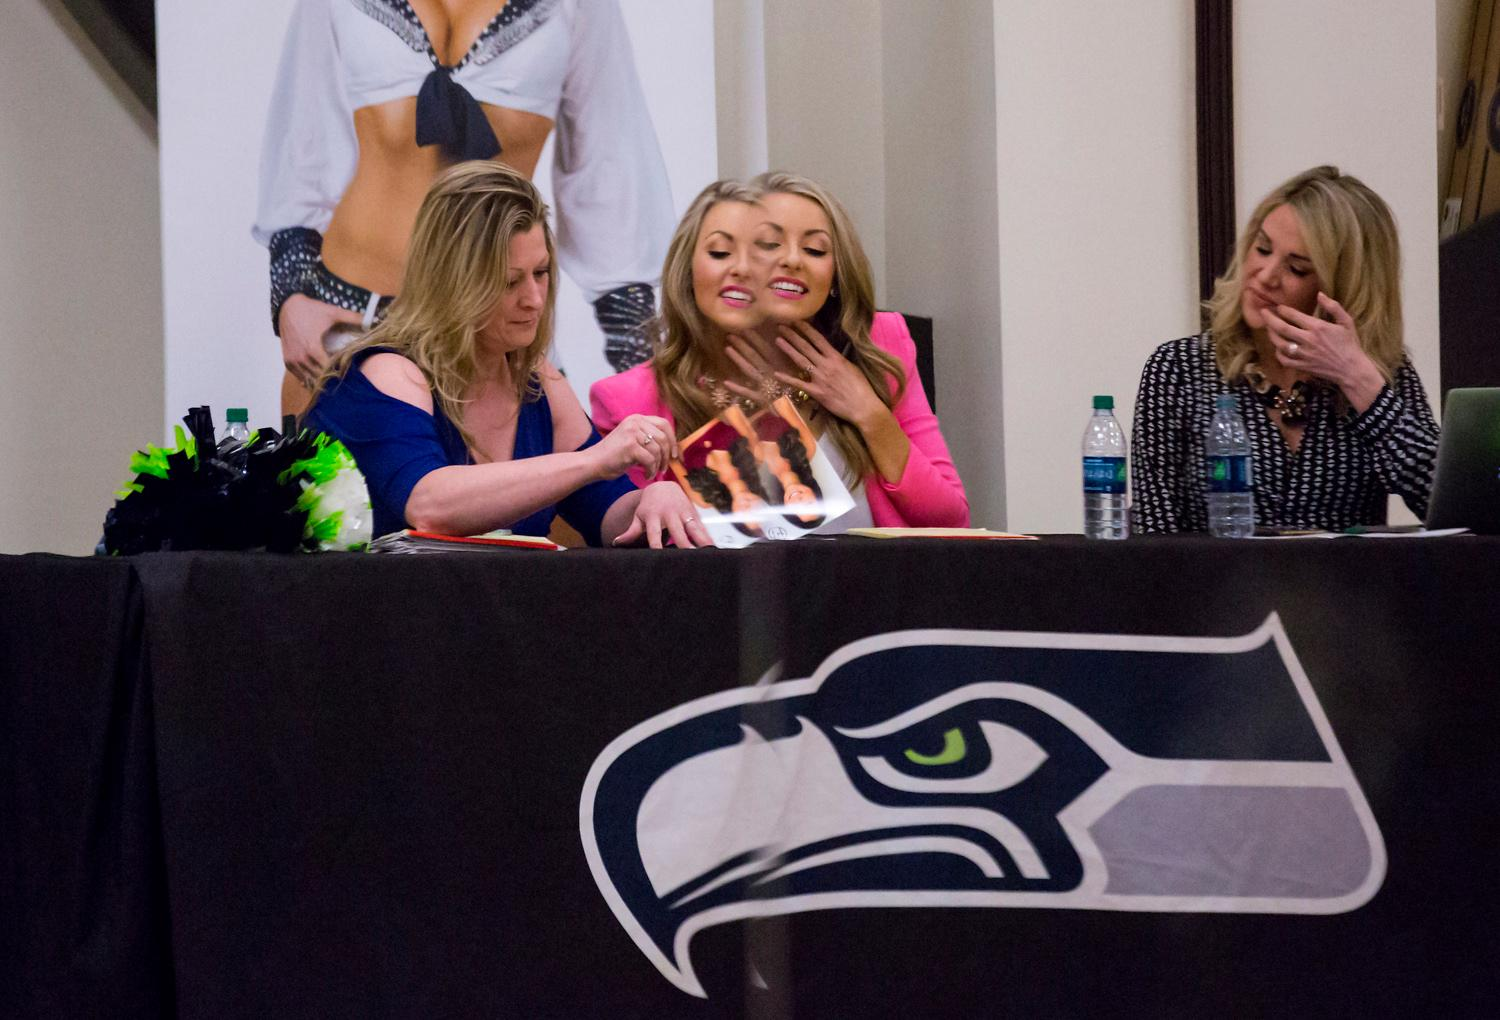 It's that time of year again! Saturday April 21 was Day 1 of the Sea Gals Semi-Final Auditions for the Seahawks 2018/2019 season. The auditions were open to anyone 19 years and older, who had obtained a high school degree. Each contestant has to dance freestyle for one minute to music provided by the Hawks, ?and were judged on dance ability, physical appearance and showmanship. Those invited back will be taught a routine, and the finals are May 13, 2018. Don't worry - we'll be there too! (Sy Bean / Seattle Refined)